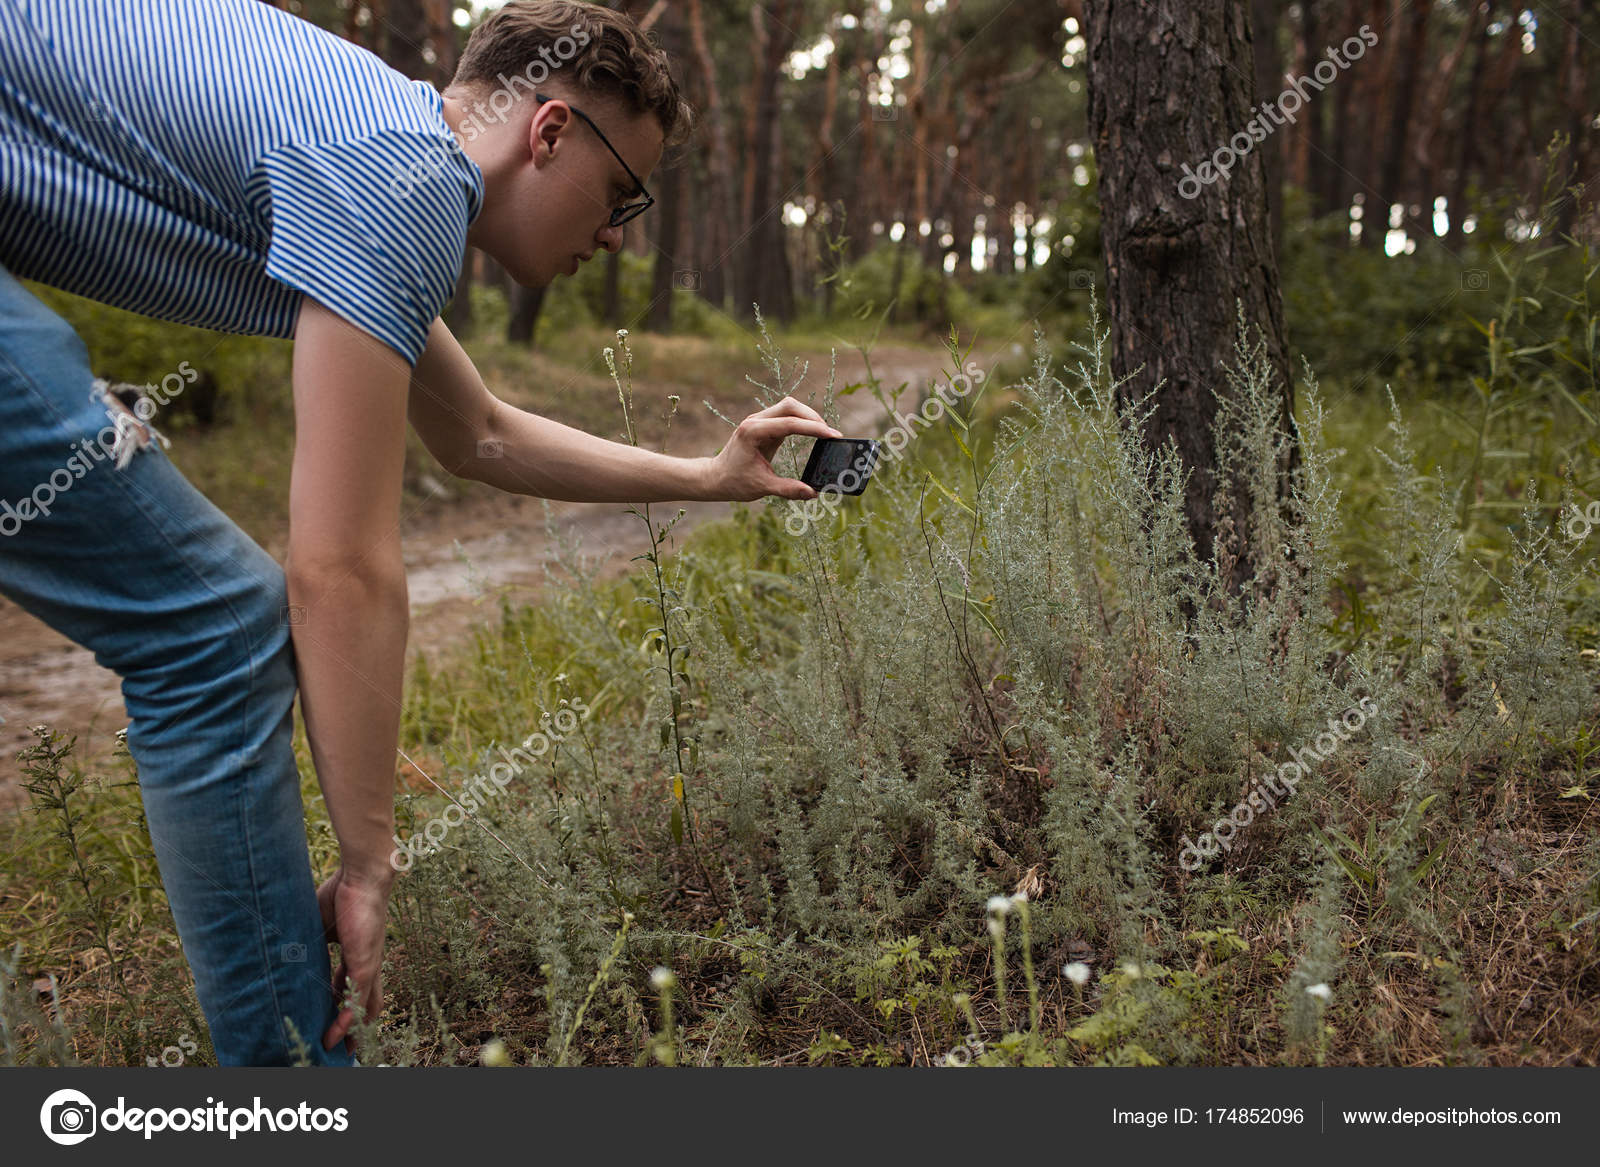 Camera texture create forest grass photo concept  — Stock Photo